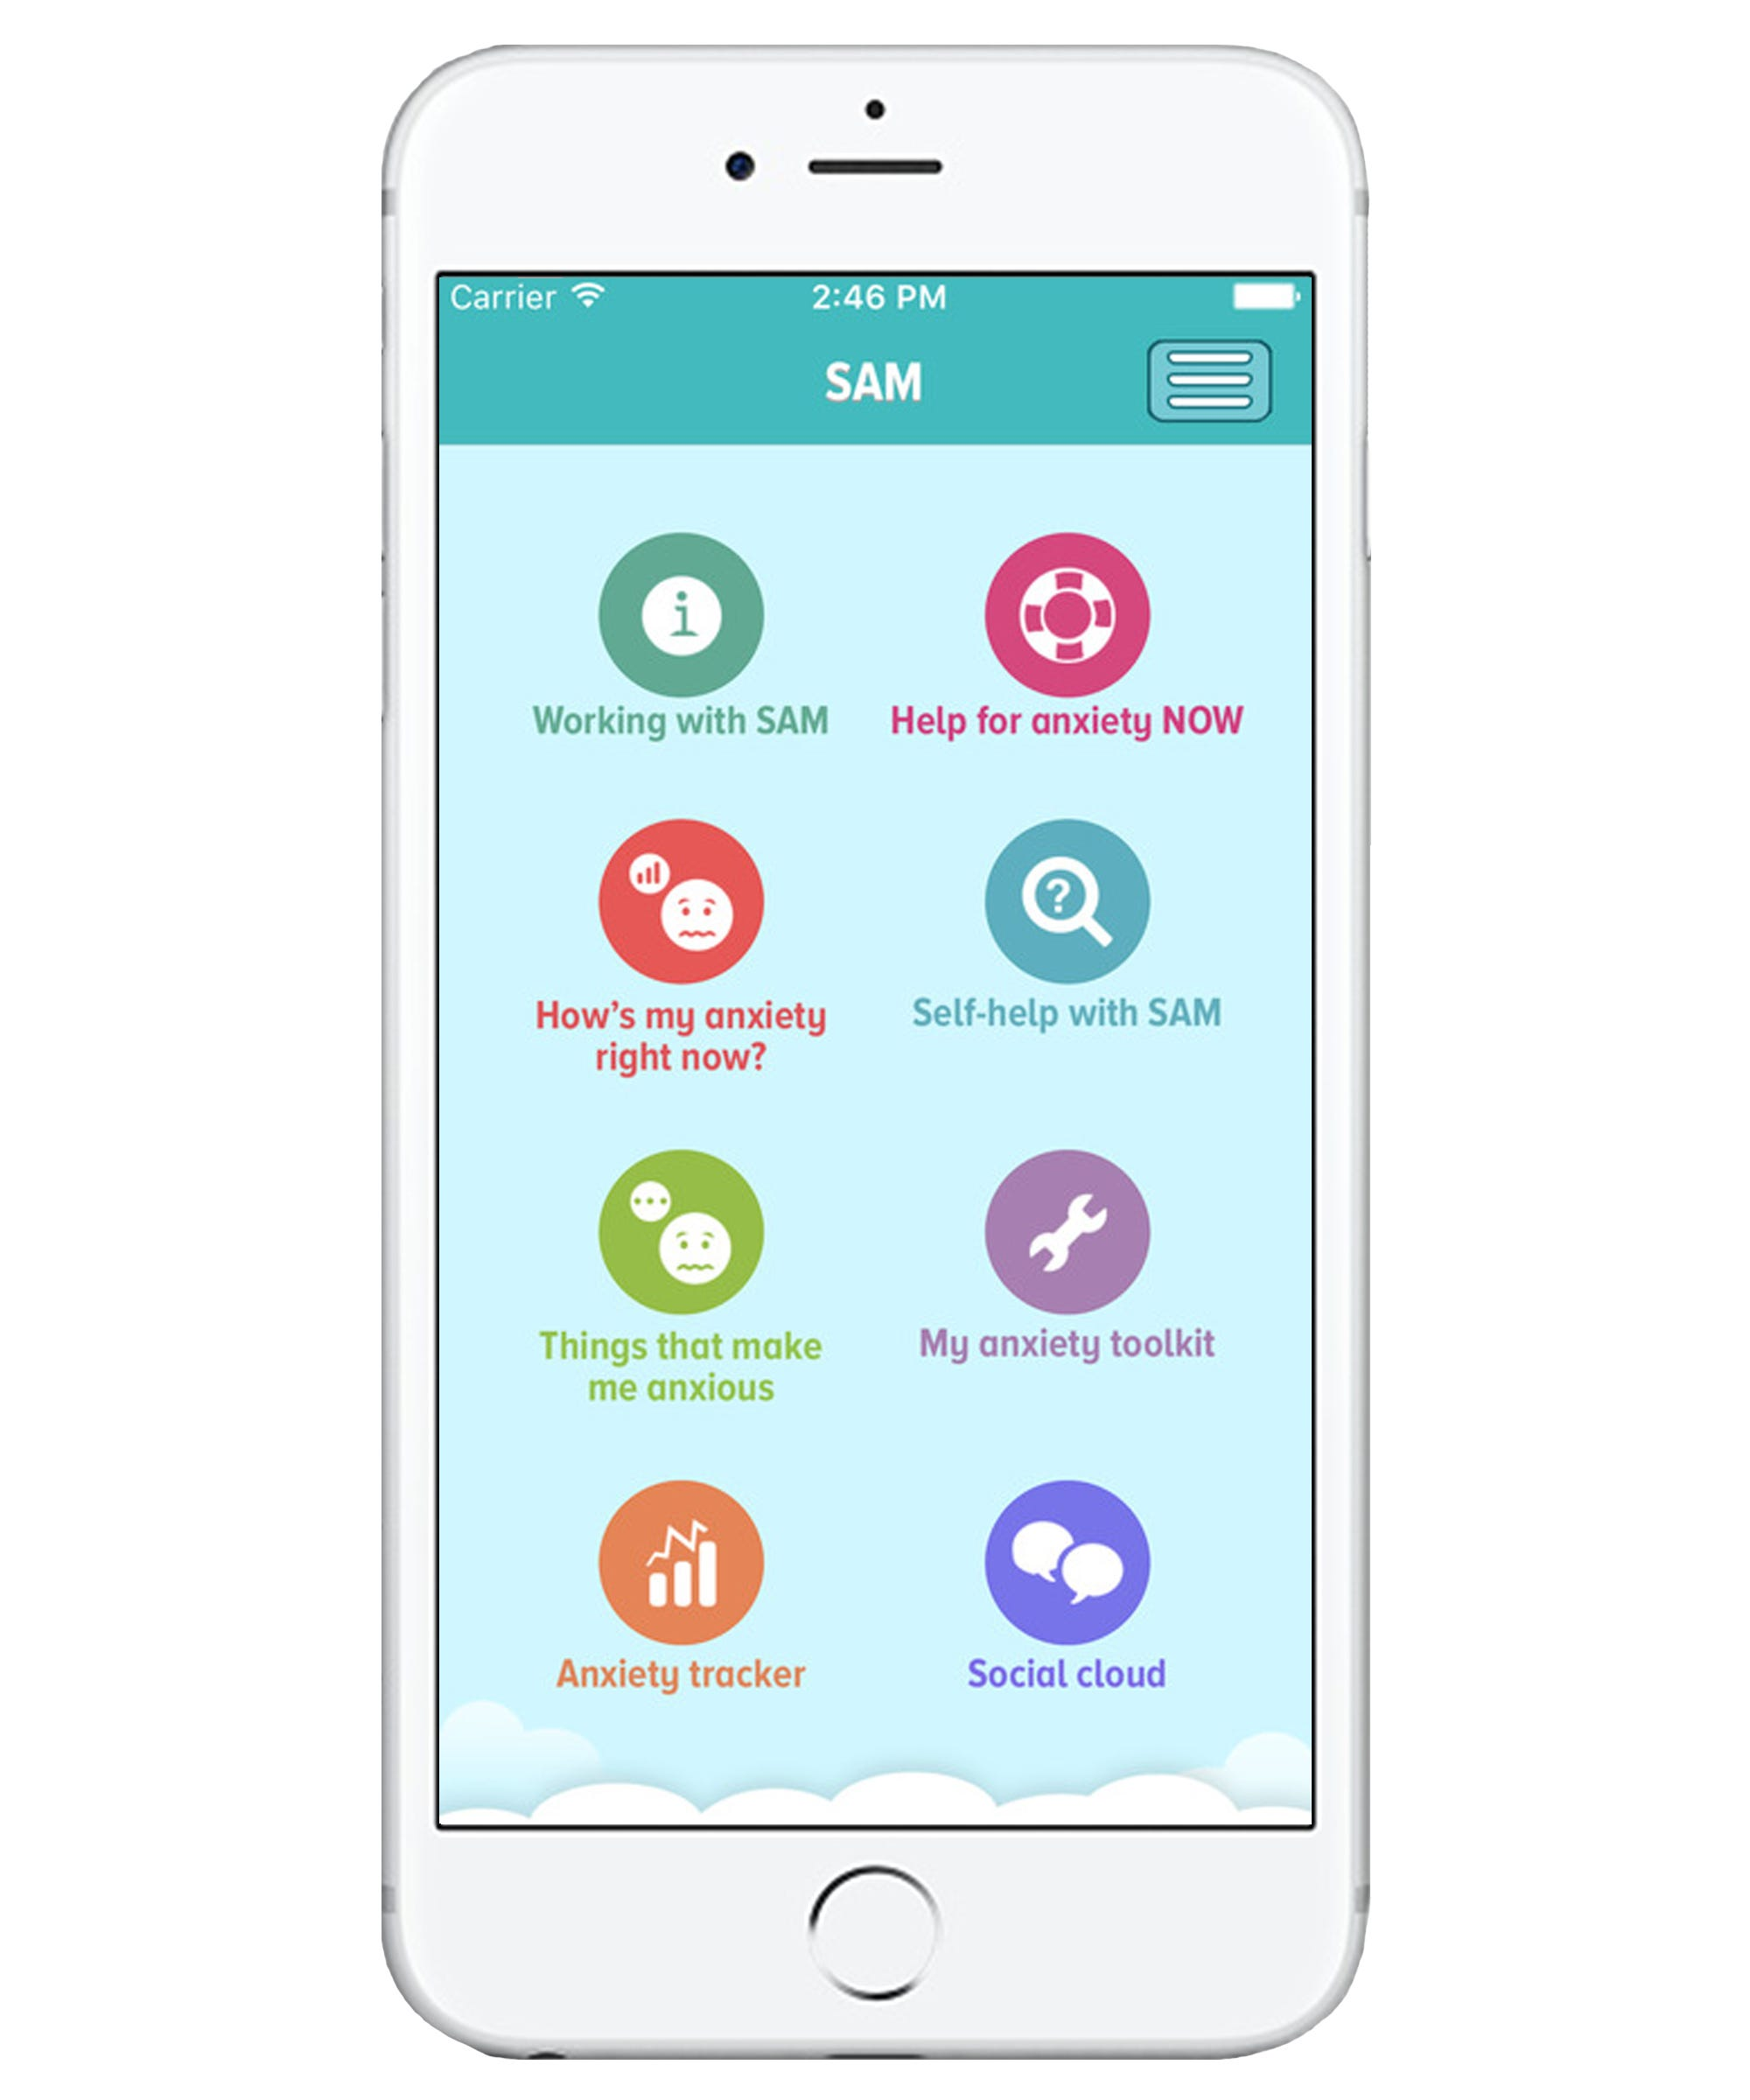 mood tracker apps for anxiety management, stress-relief